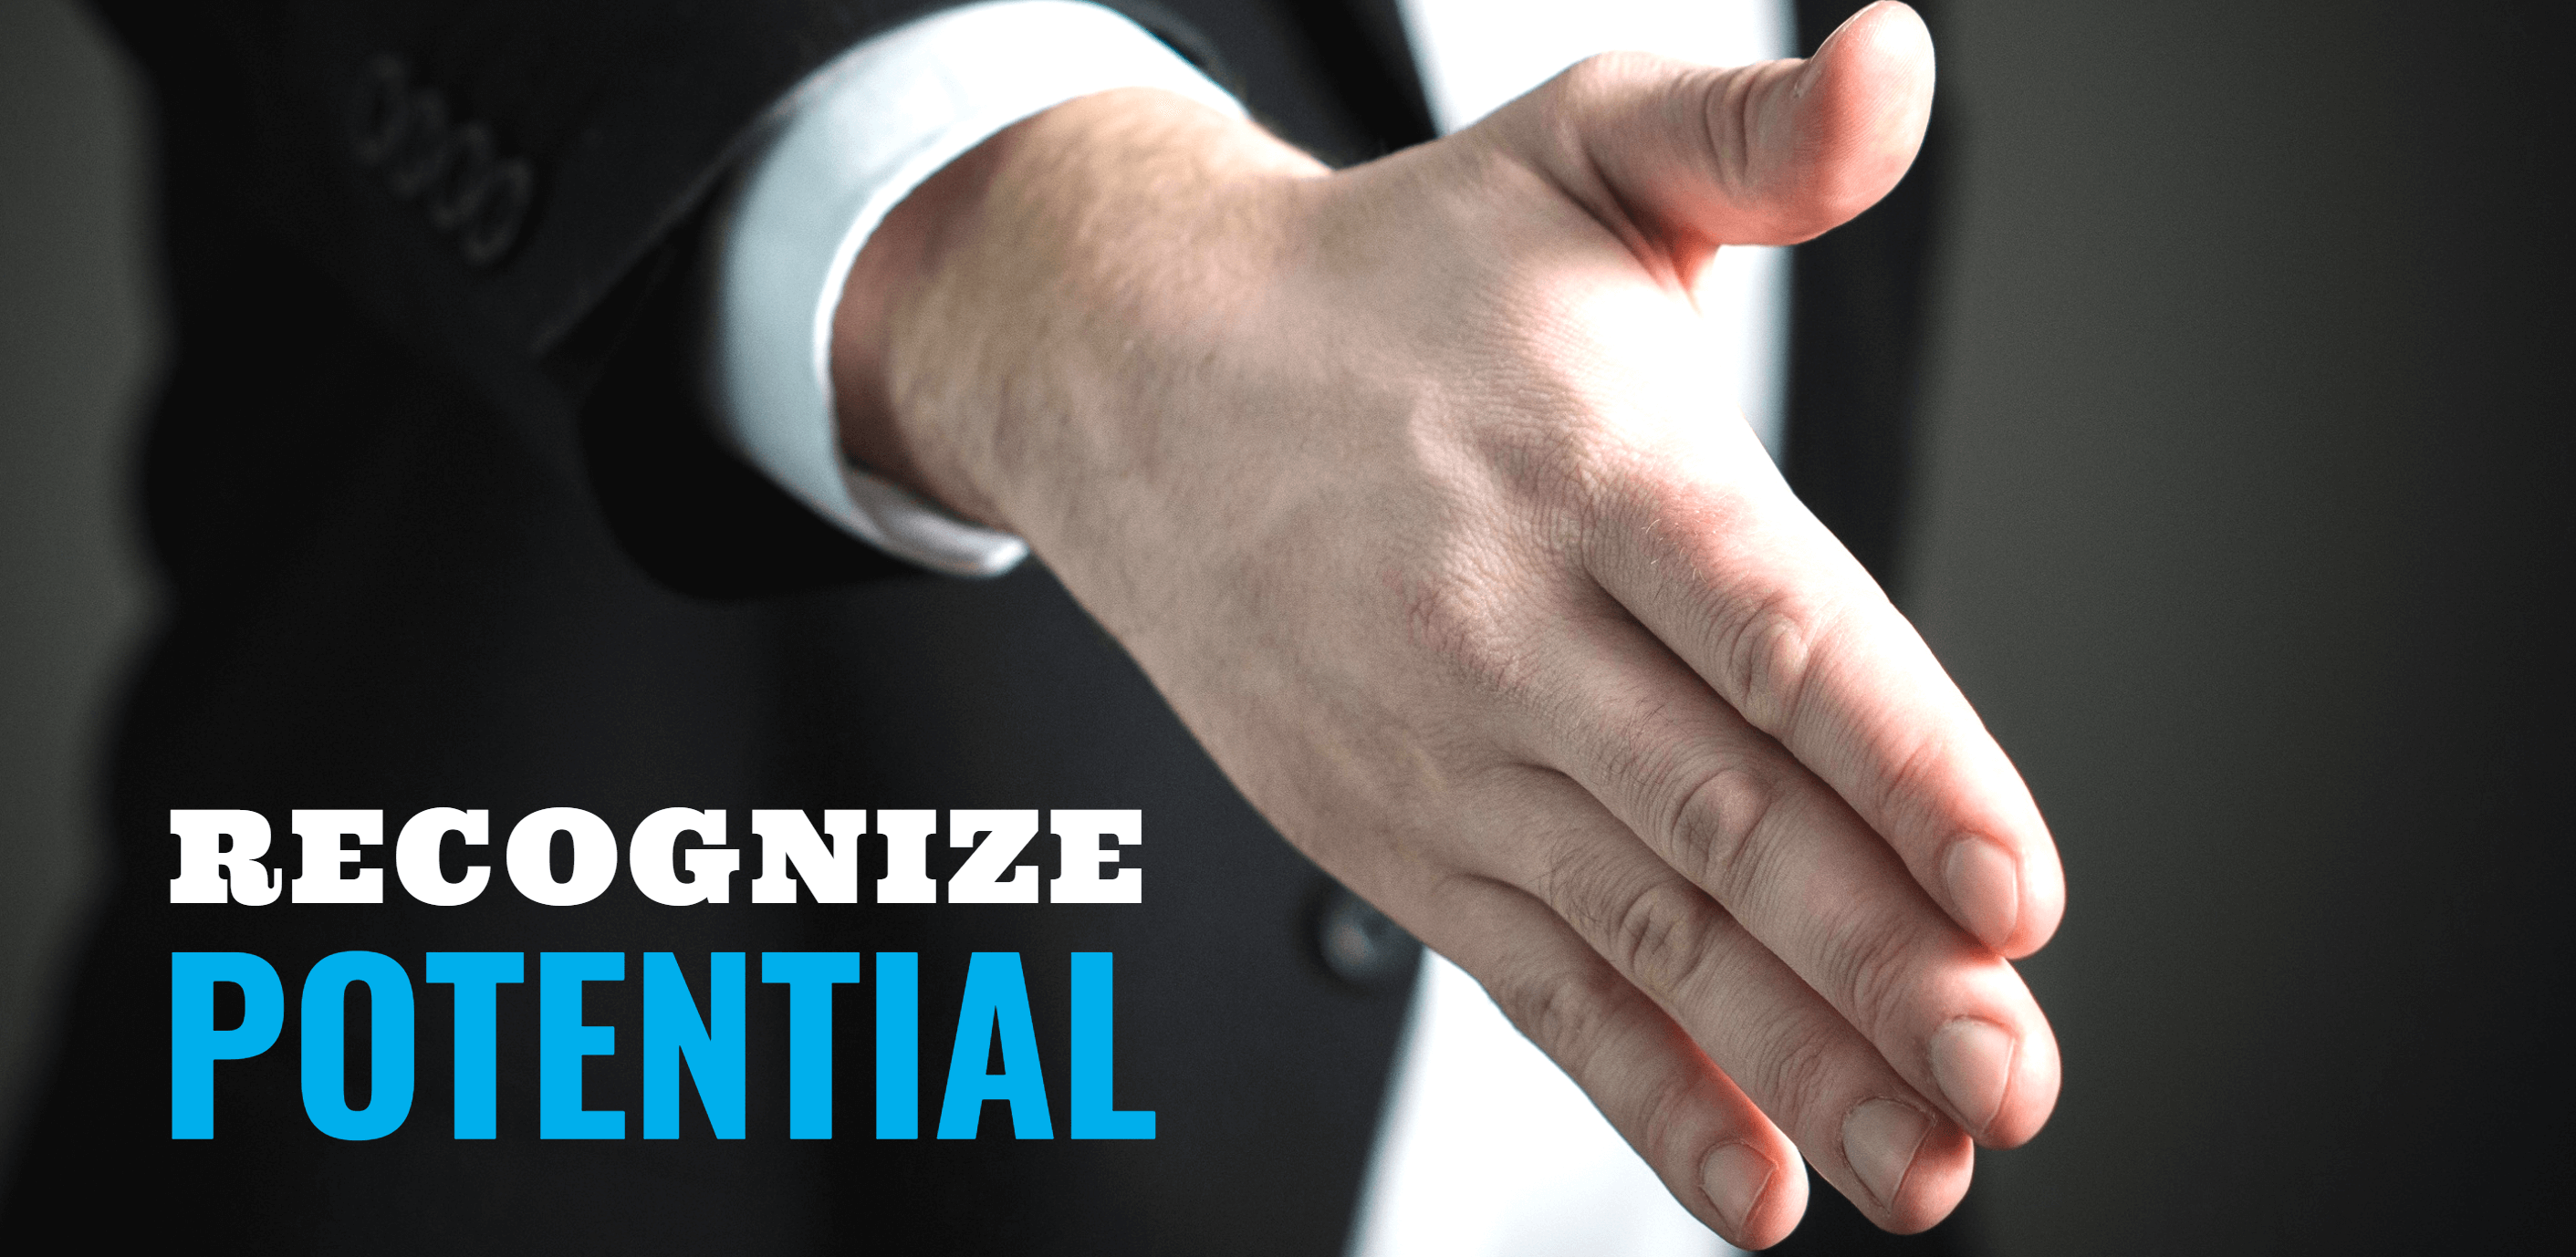 Hand reaching out for a handshake. Text says recognize potential